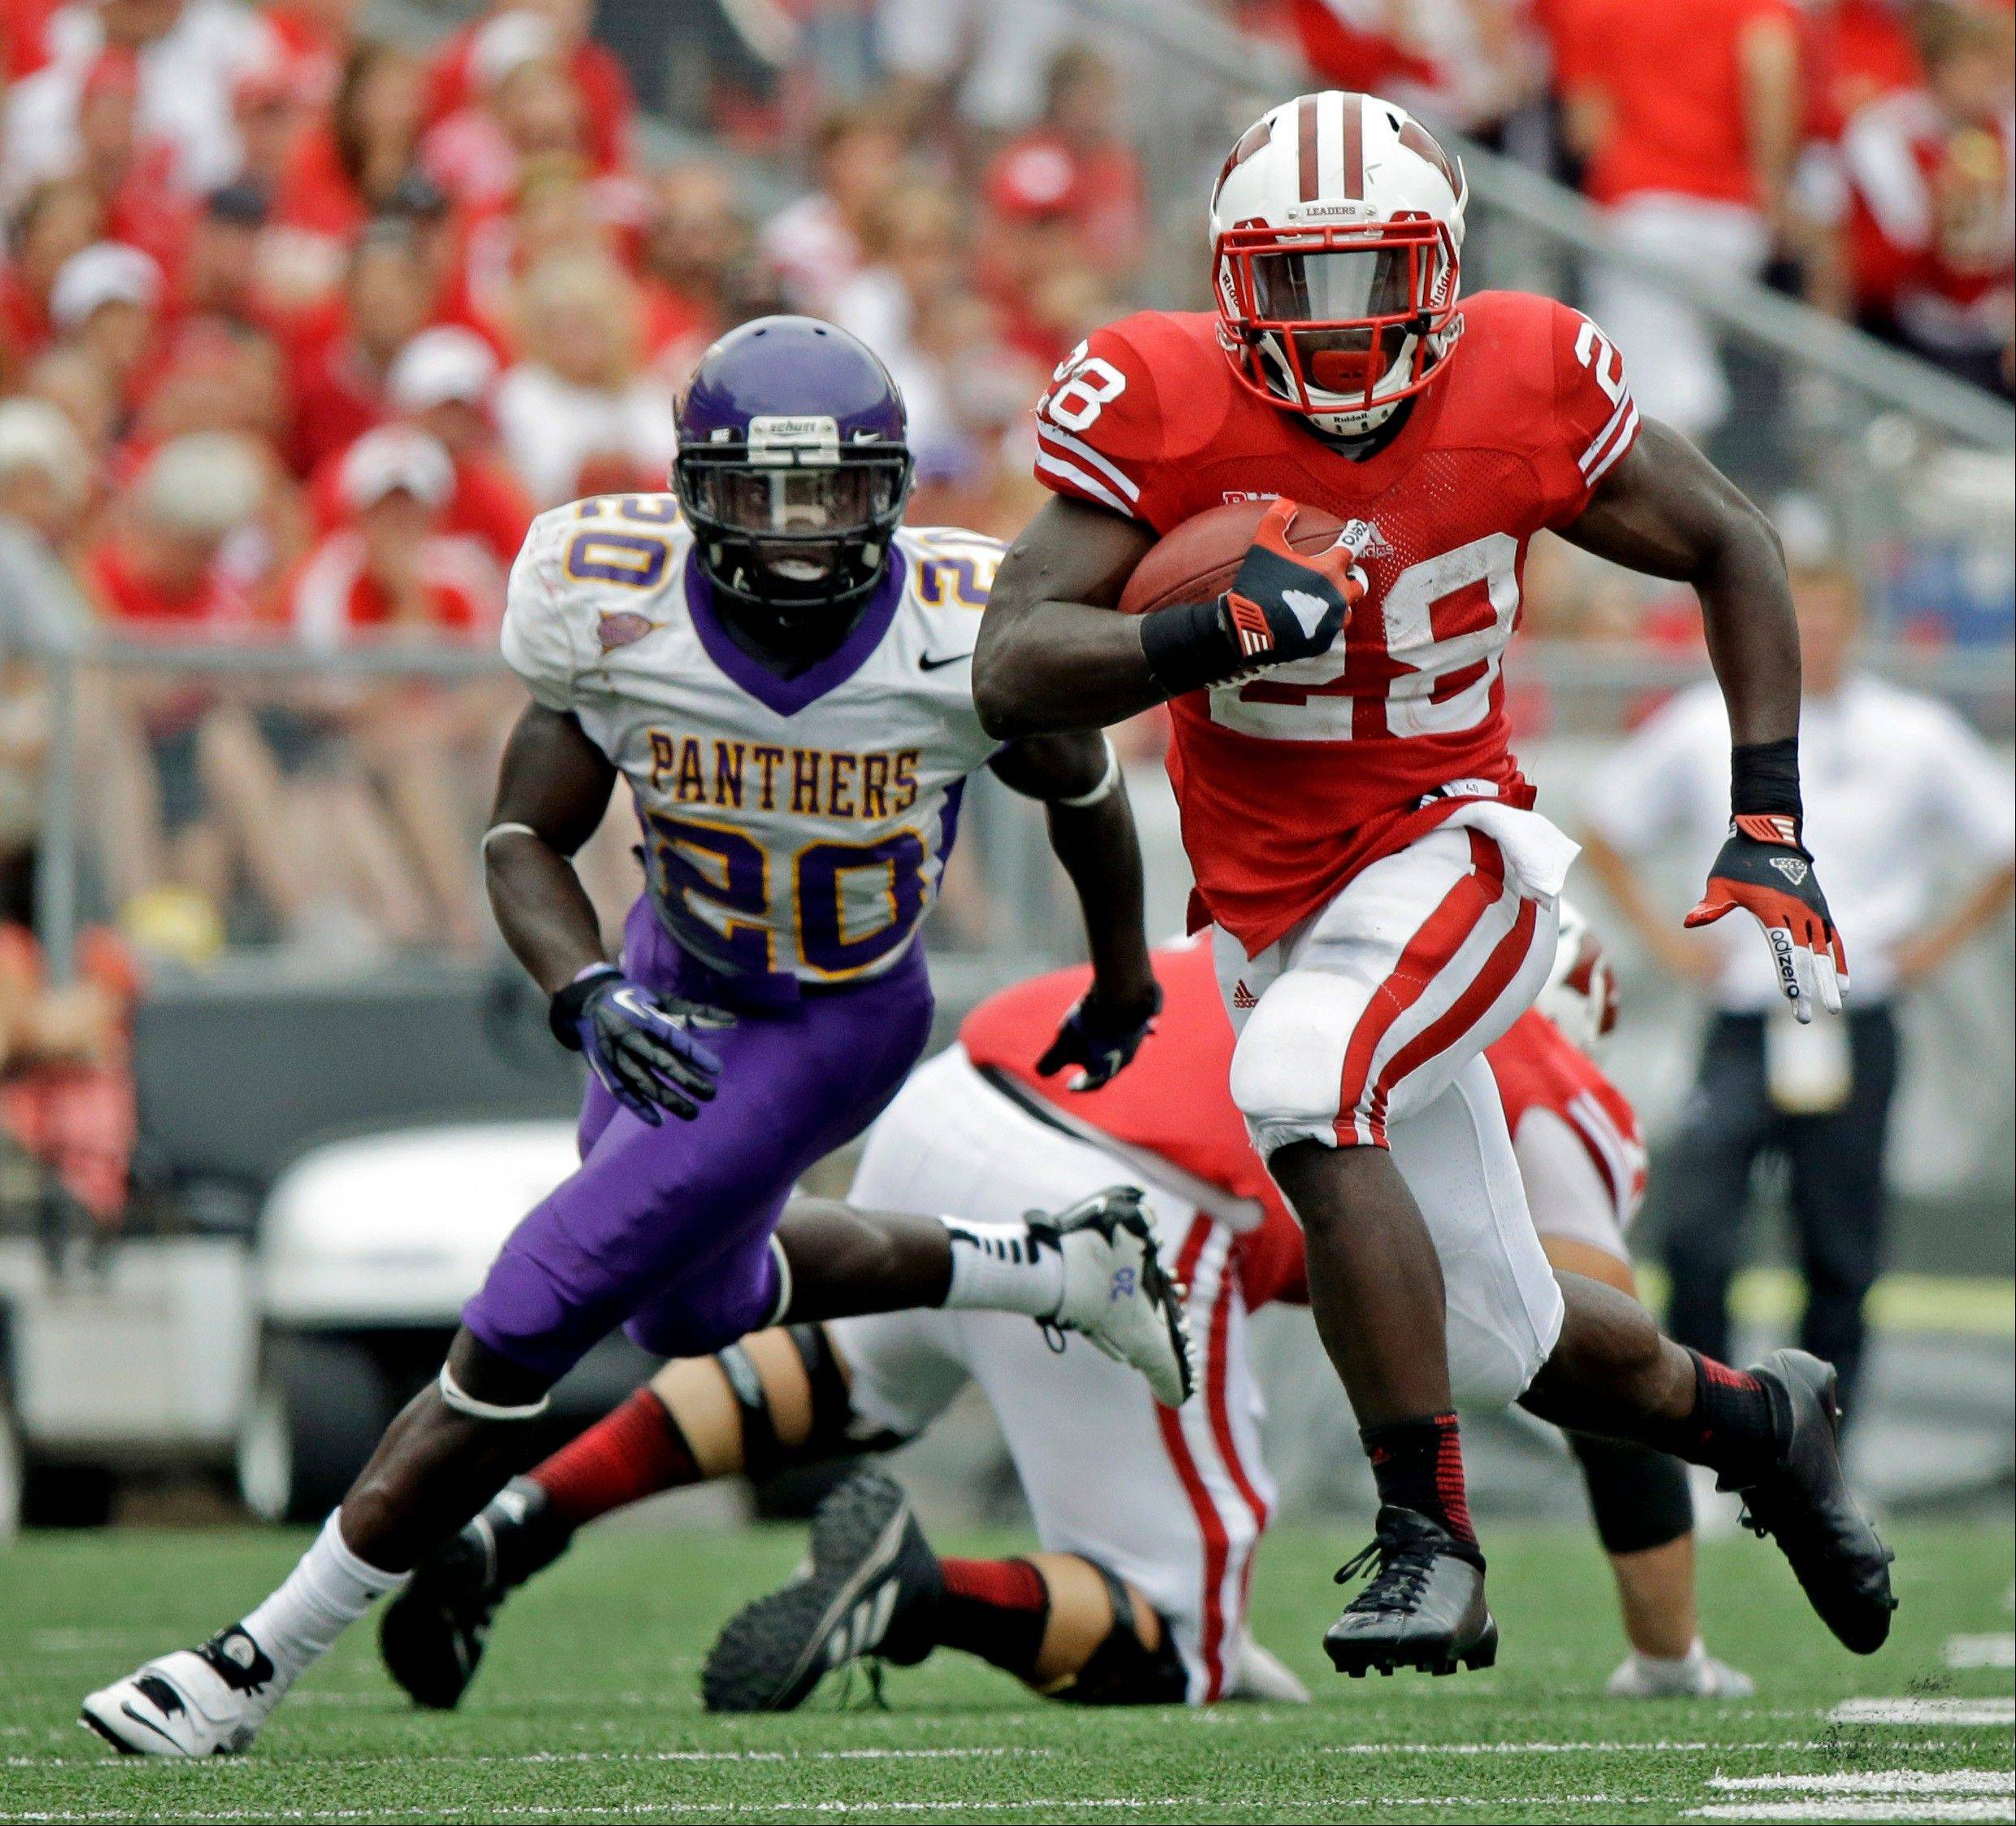 Wisconsin's Montee Ball breaks away from Northern Iowa's Wilmot Wellington for a 16-yard pass reception during the second half last Saturday in Madison.